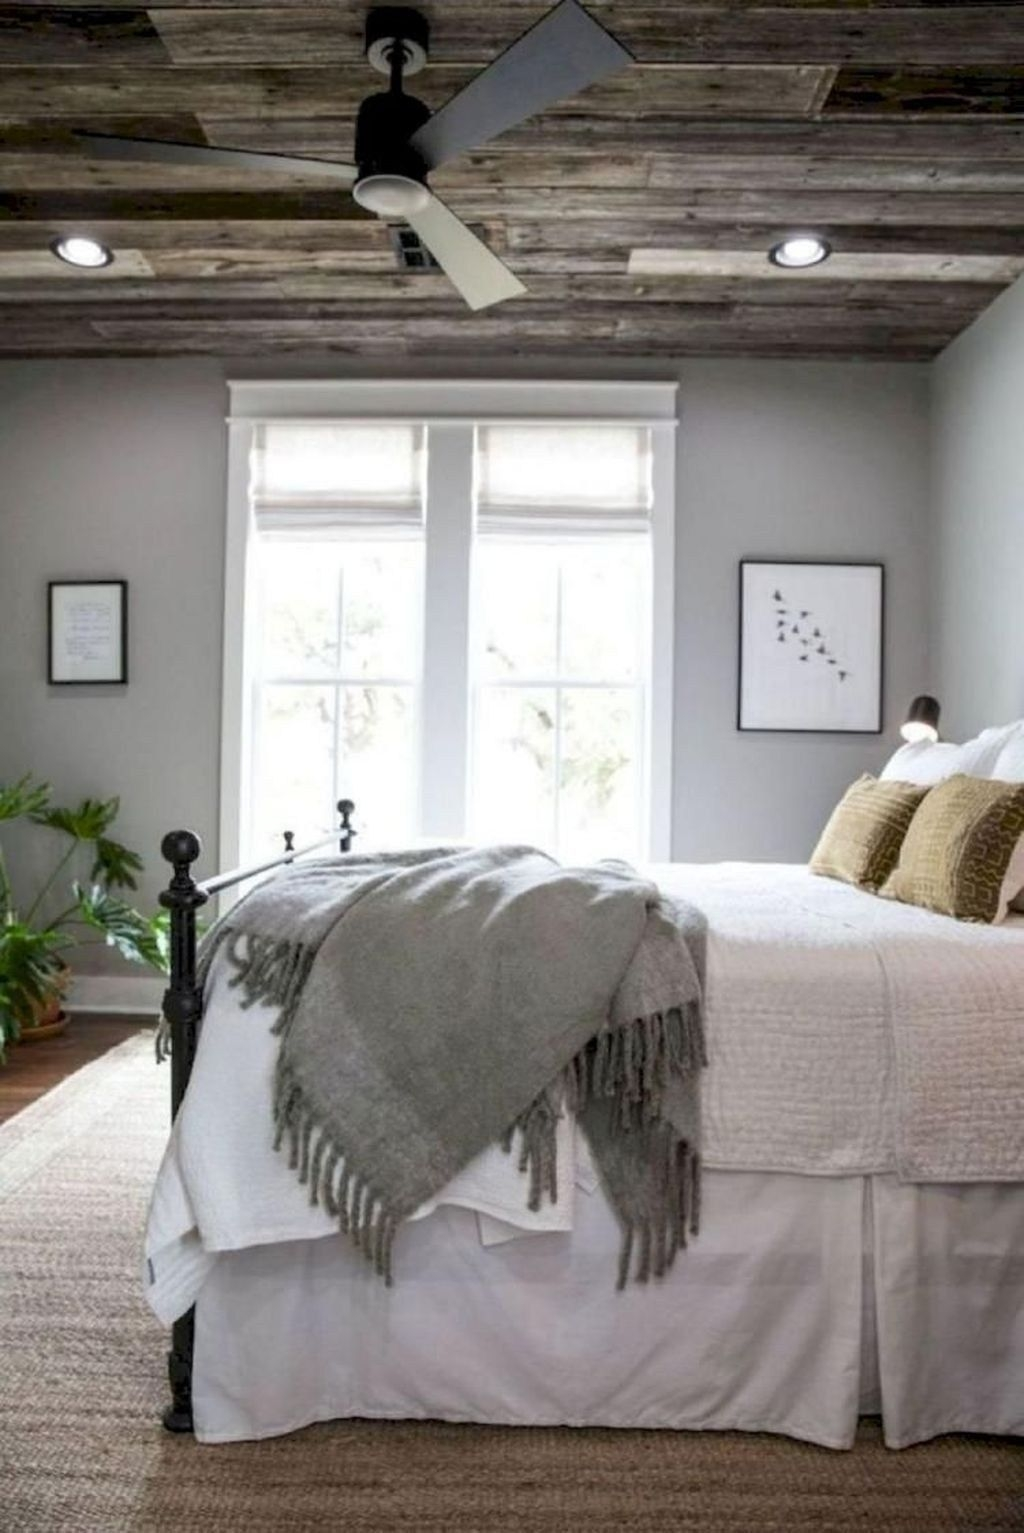 Smart Bedroom Decor Ideas With Farmhouse Style39